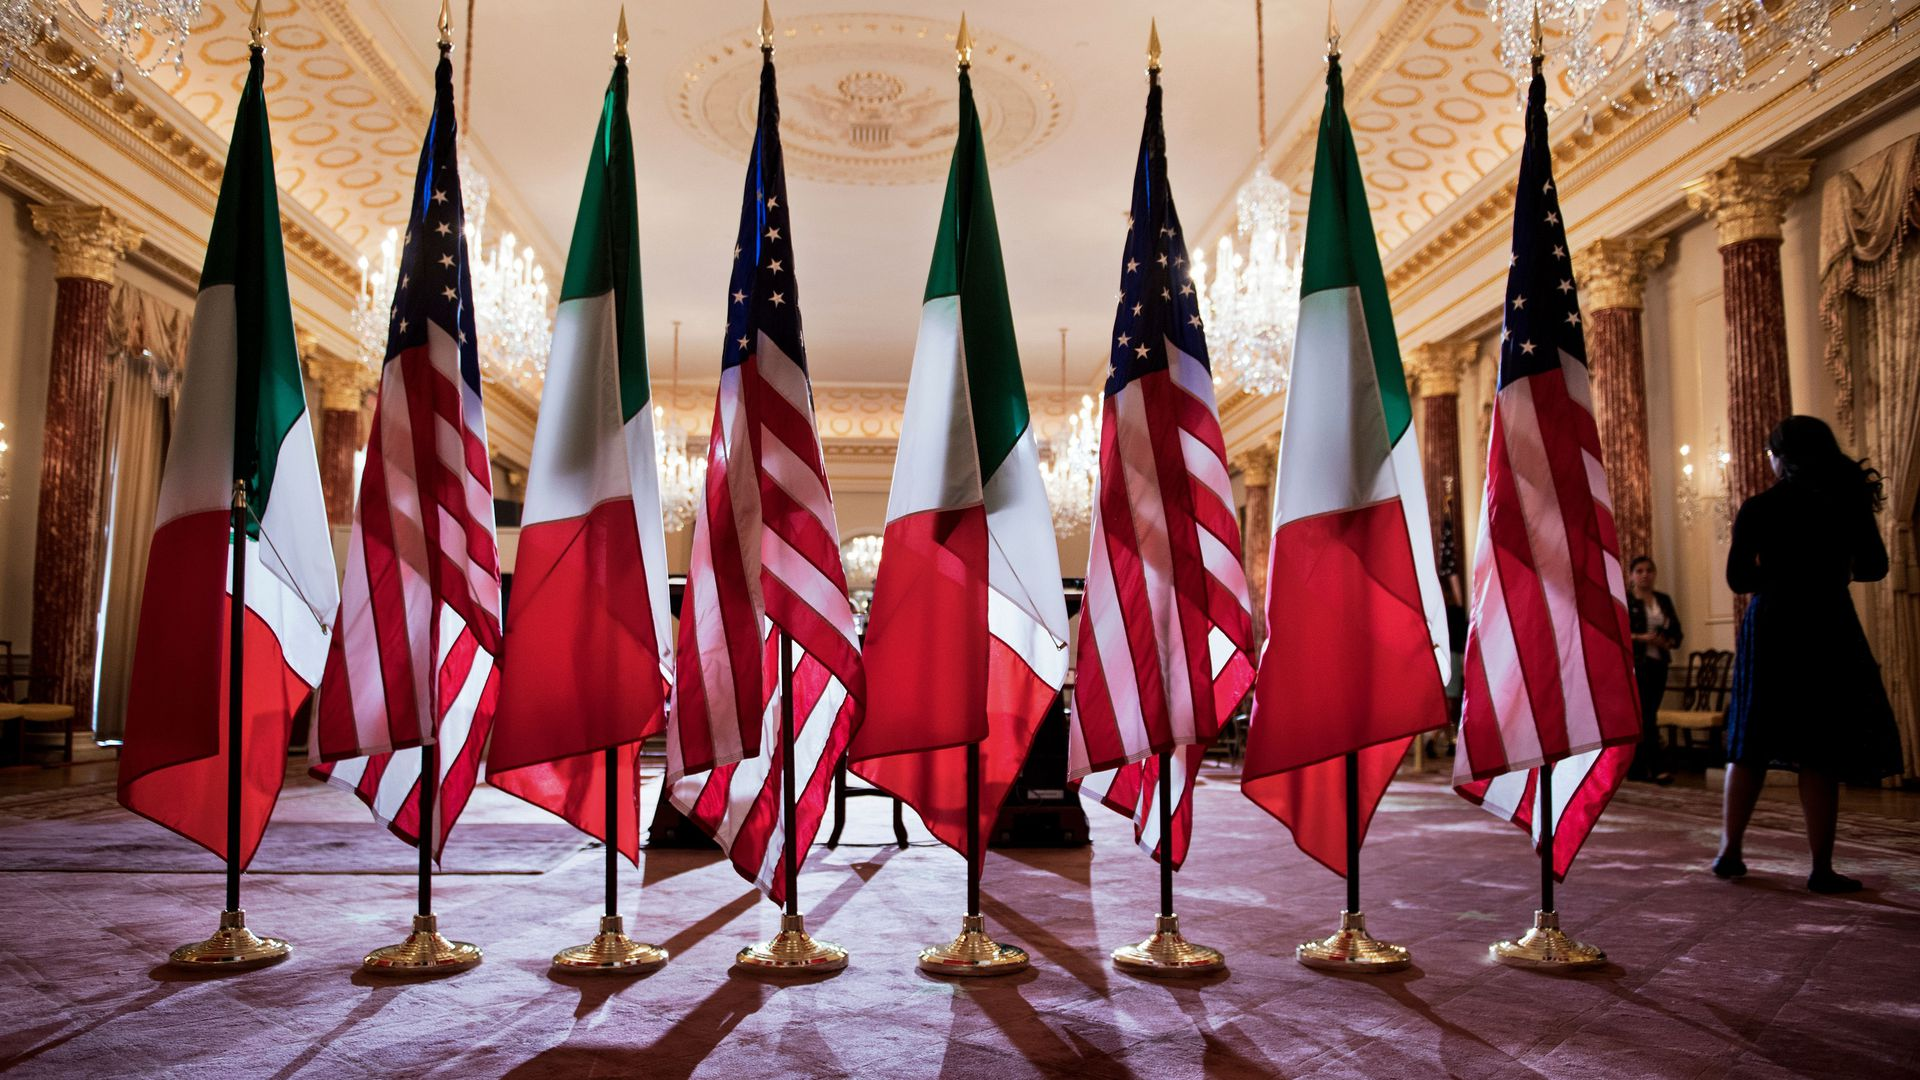 U.S. and Mexico flags stand side-by-side.